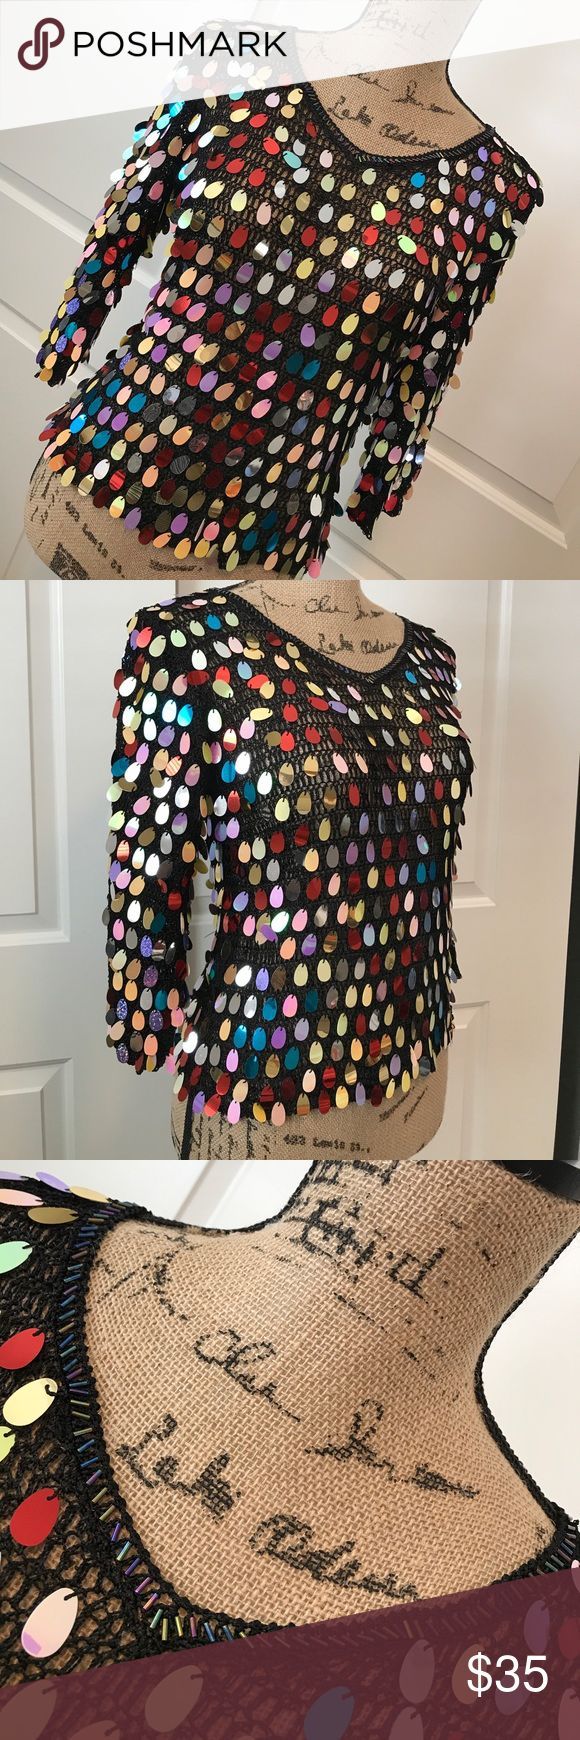 PRETTY ANGEL Mesh Sequined Festival Top Fun, funky and flirty !! This is a black stretch mesh knit top with oval shaped multi colored sequins. Beautiful beading surrounding the neckline. Perfect festival top. This top is BRAND NEW NEVER WORN W/TAGS. Pretty Angel Tops